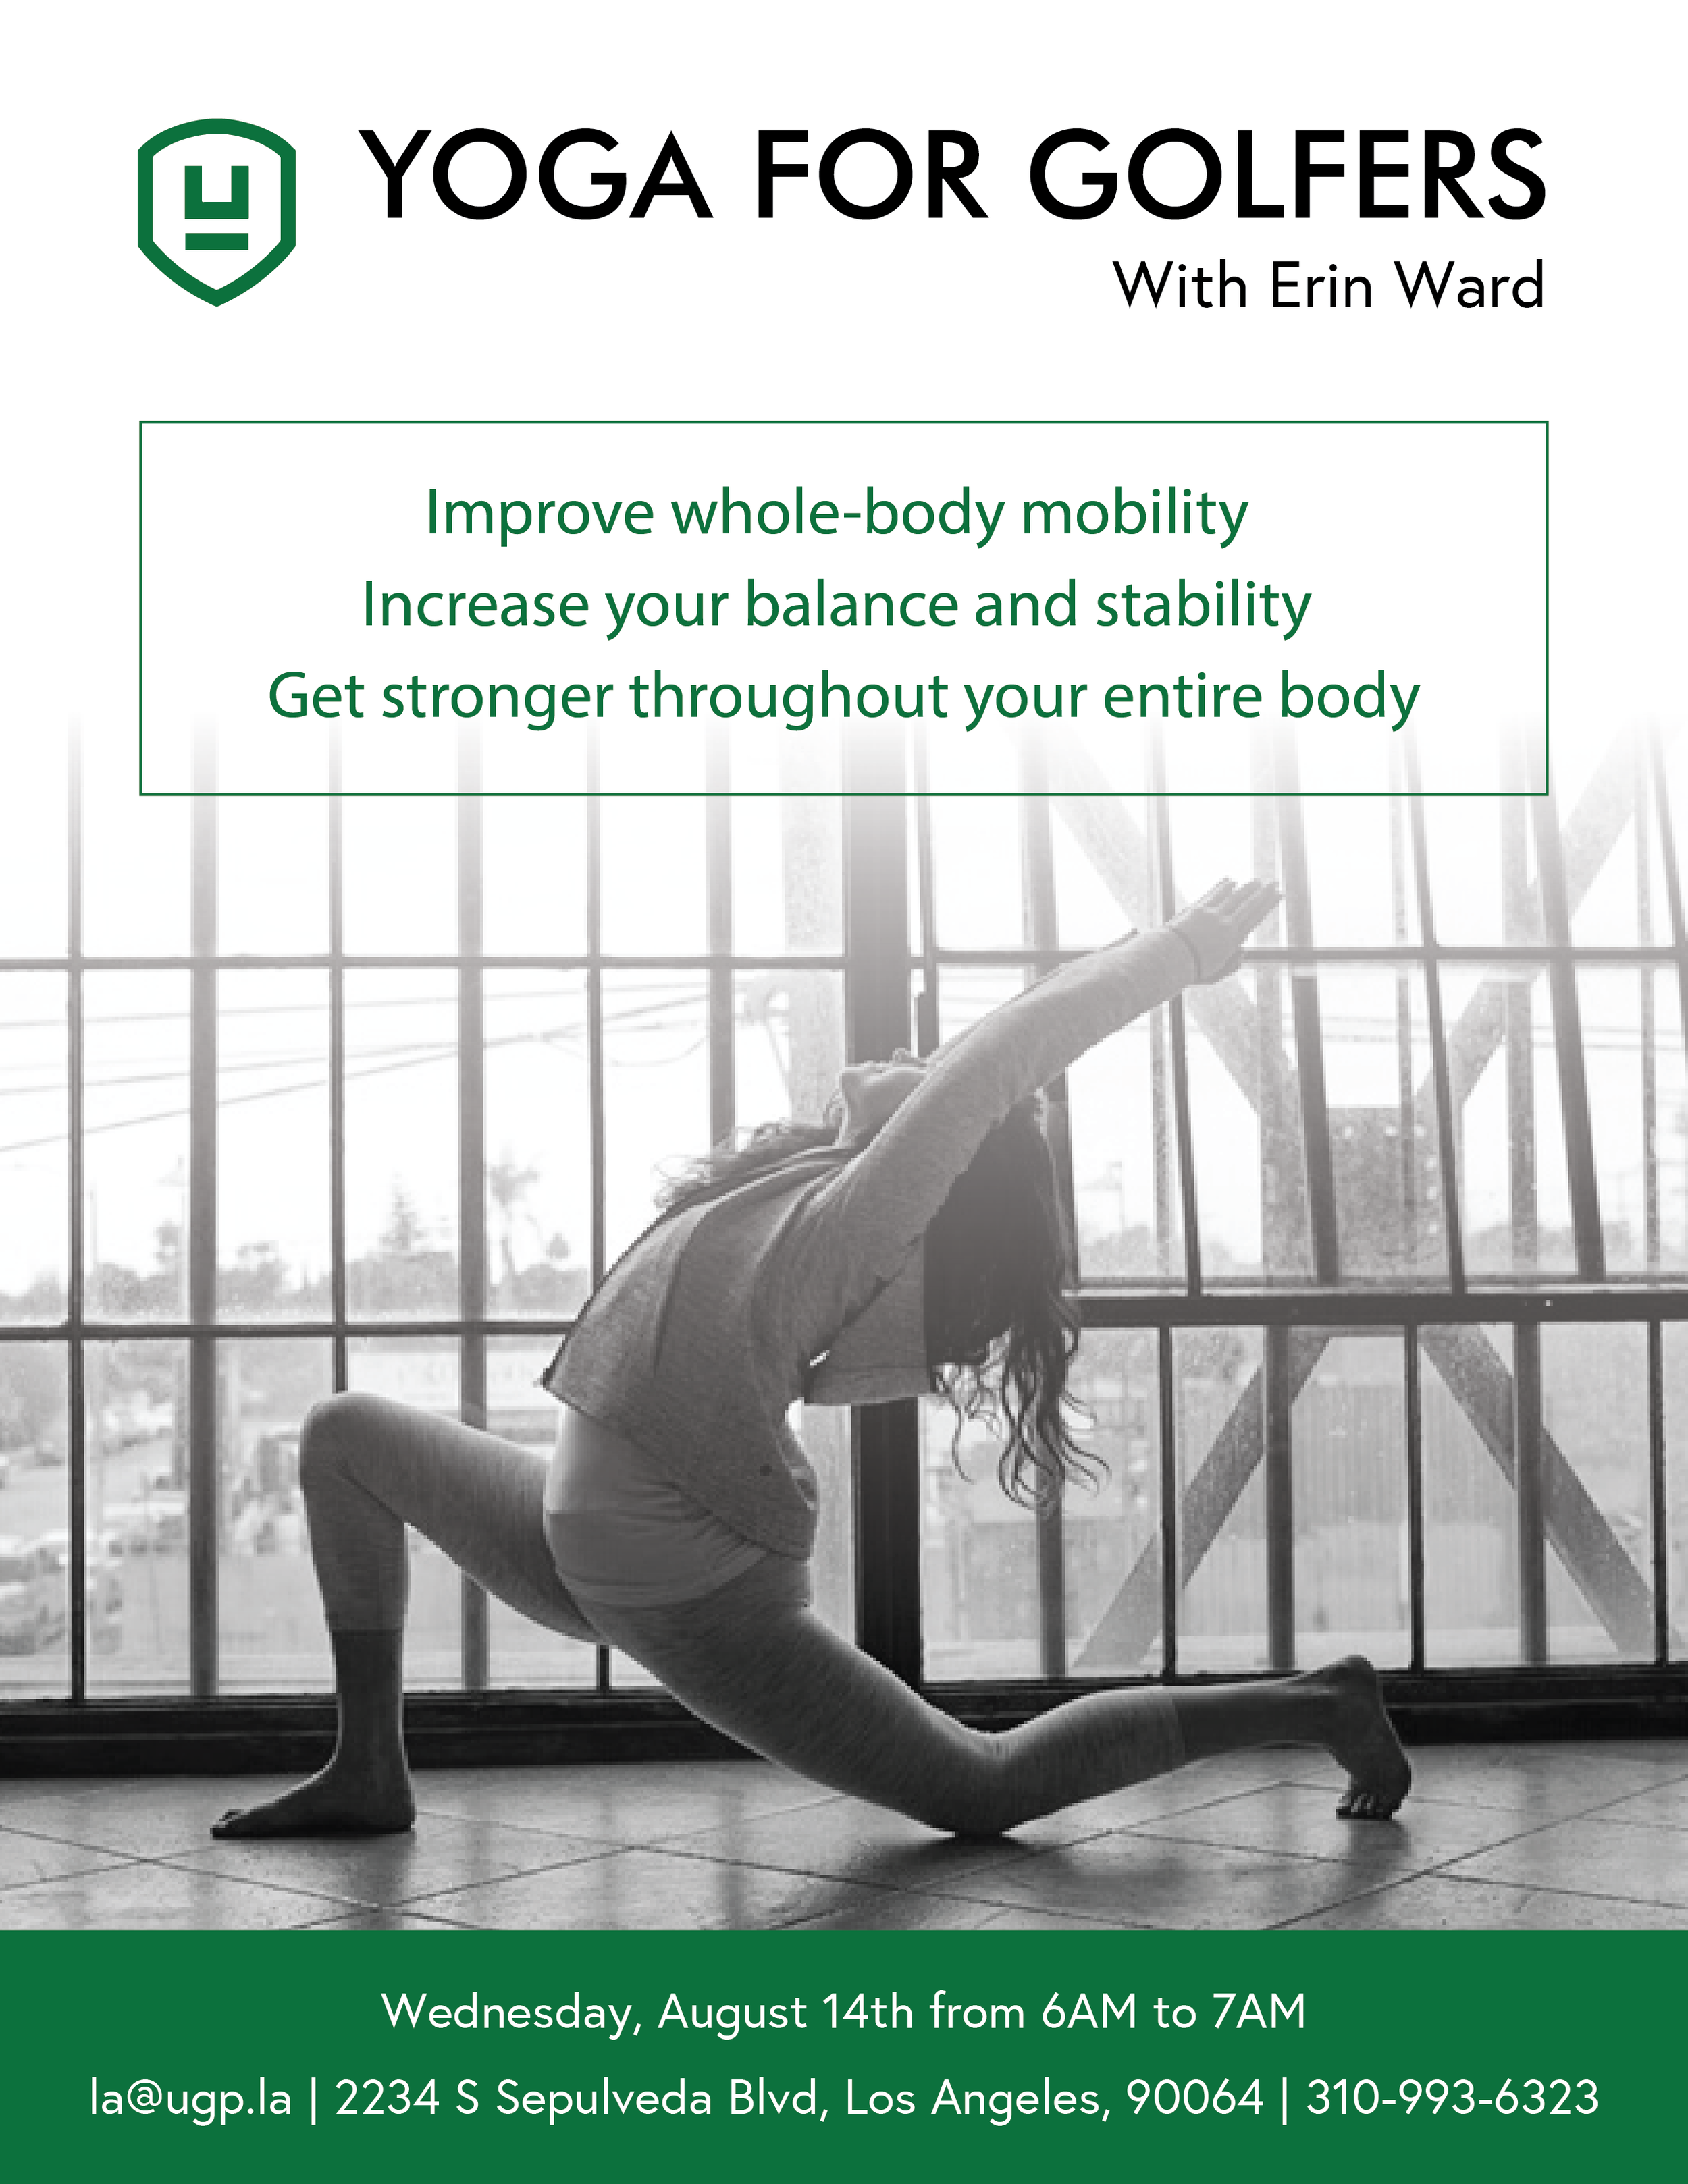 468221_Yoga for Golfers_1_071619.png